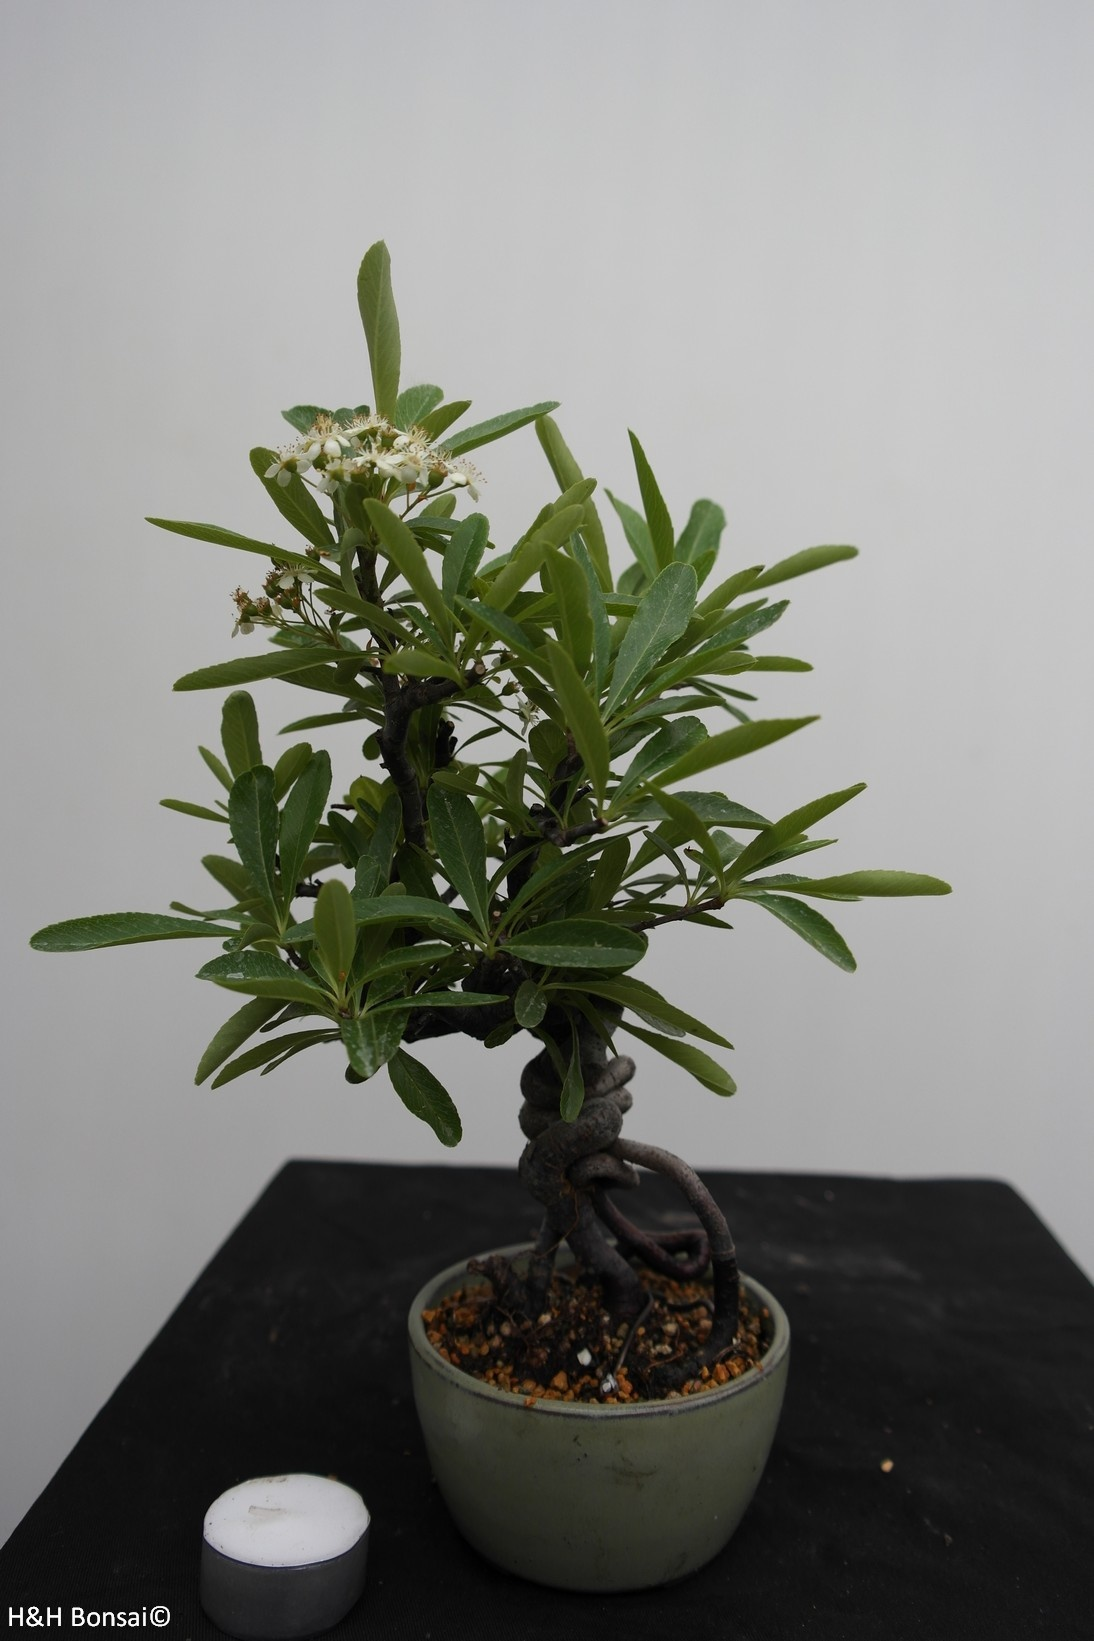 Bonsai Firethorn, Pyracantha, no. 7525